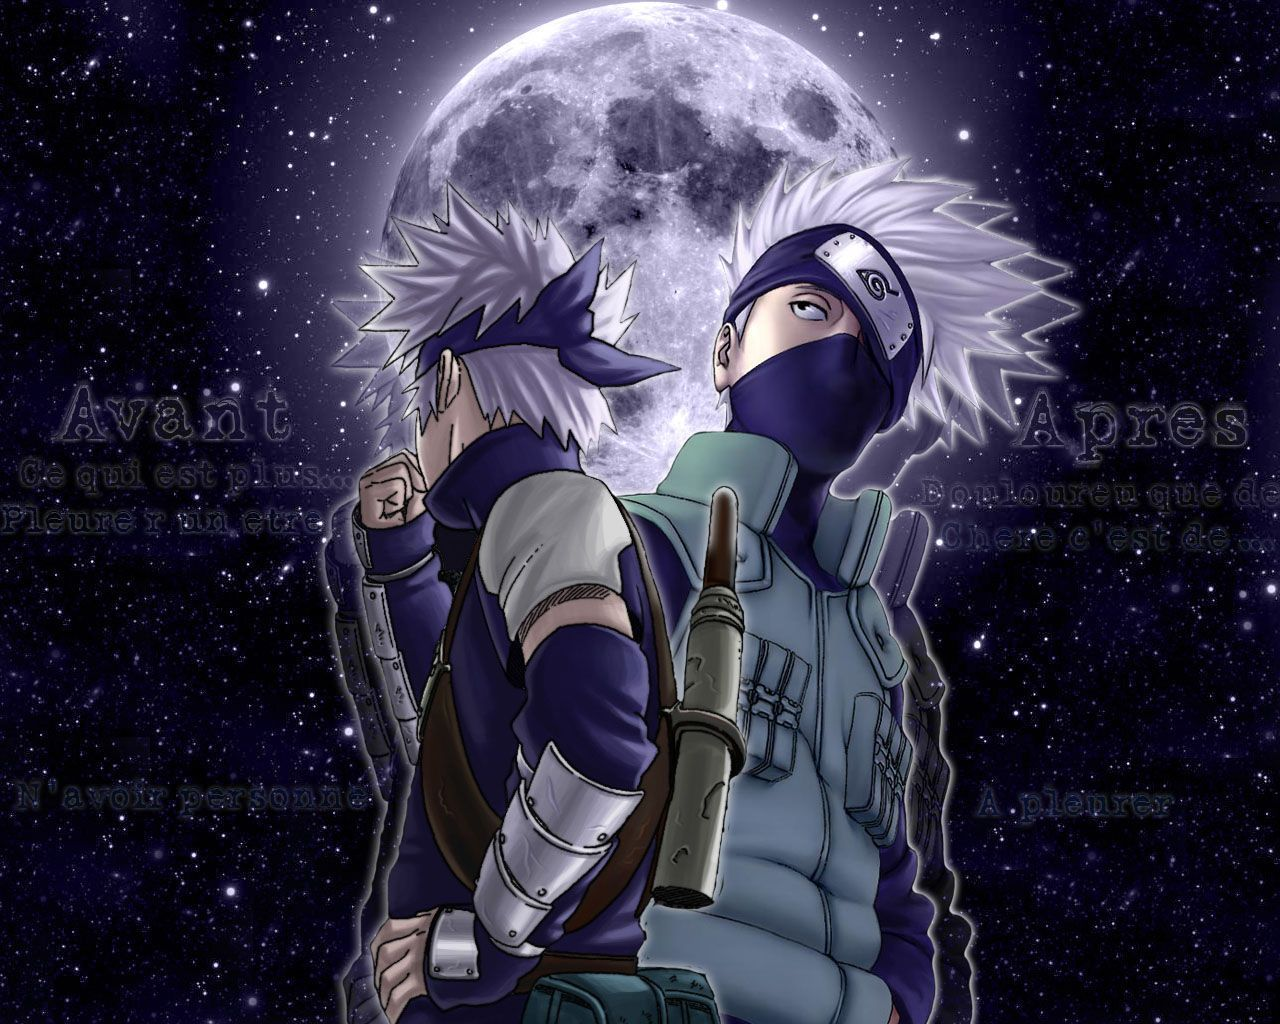 Naruto Kakashi Wallpaper For Android Cool Anime Wallpapers Anime Anime Backgrounds Wallpapers